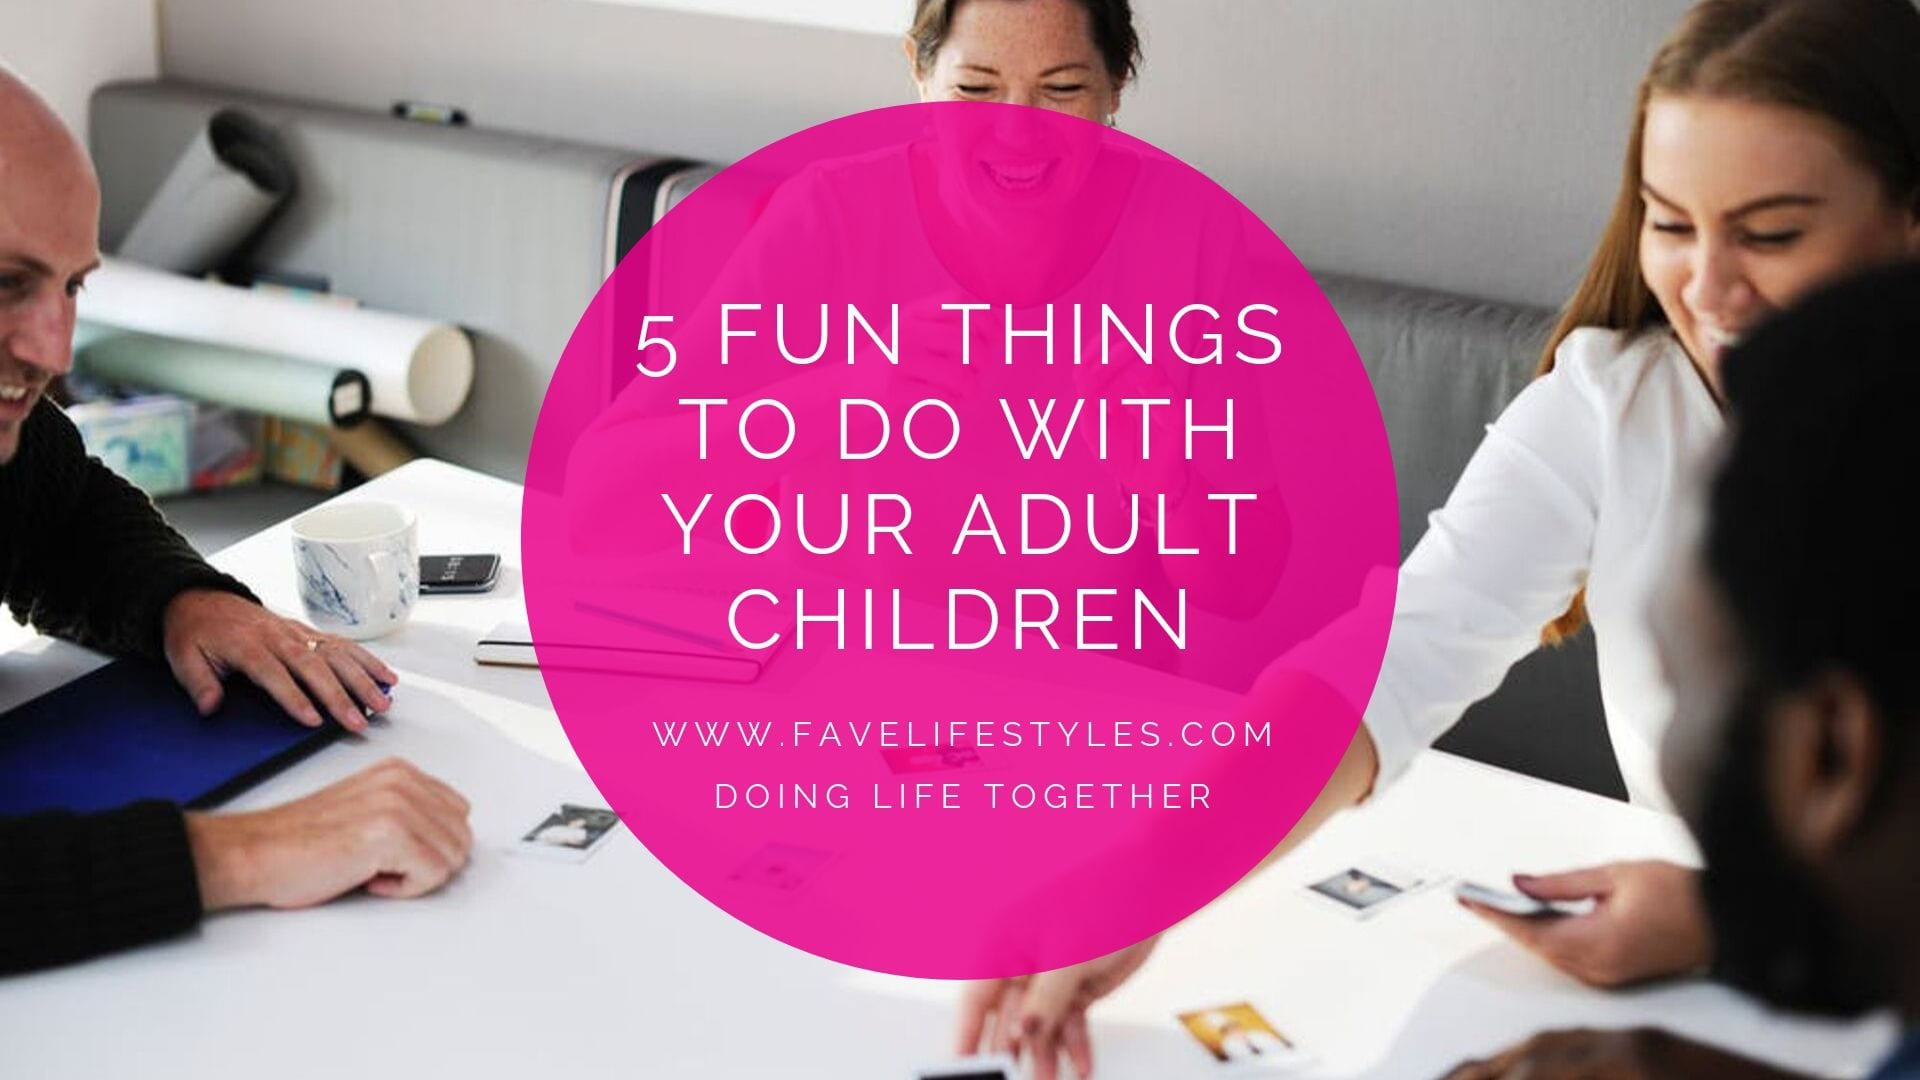 5 Fun Things to Do With Your Adult Children